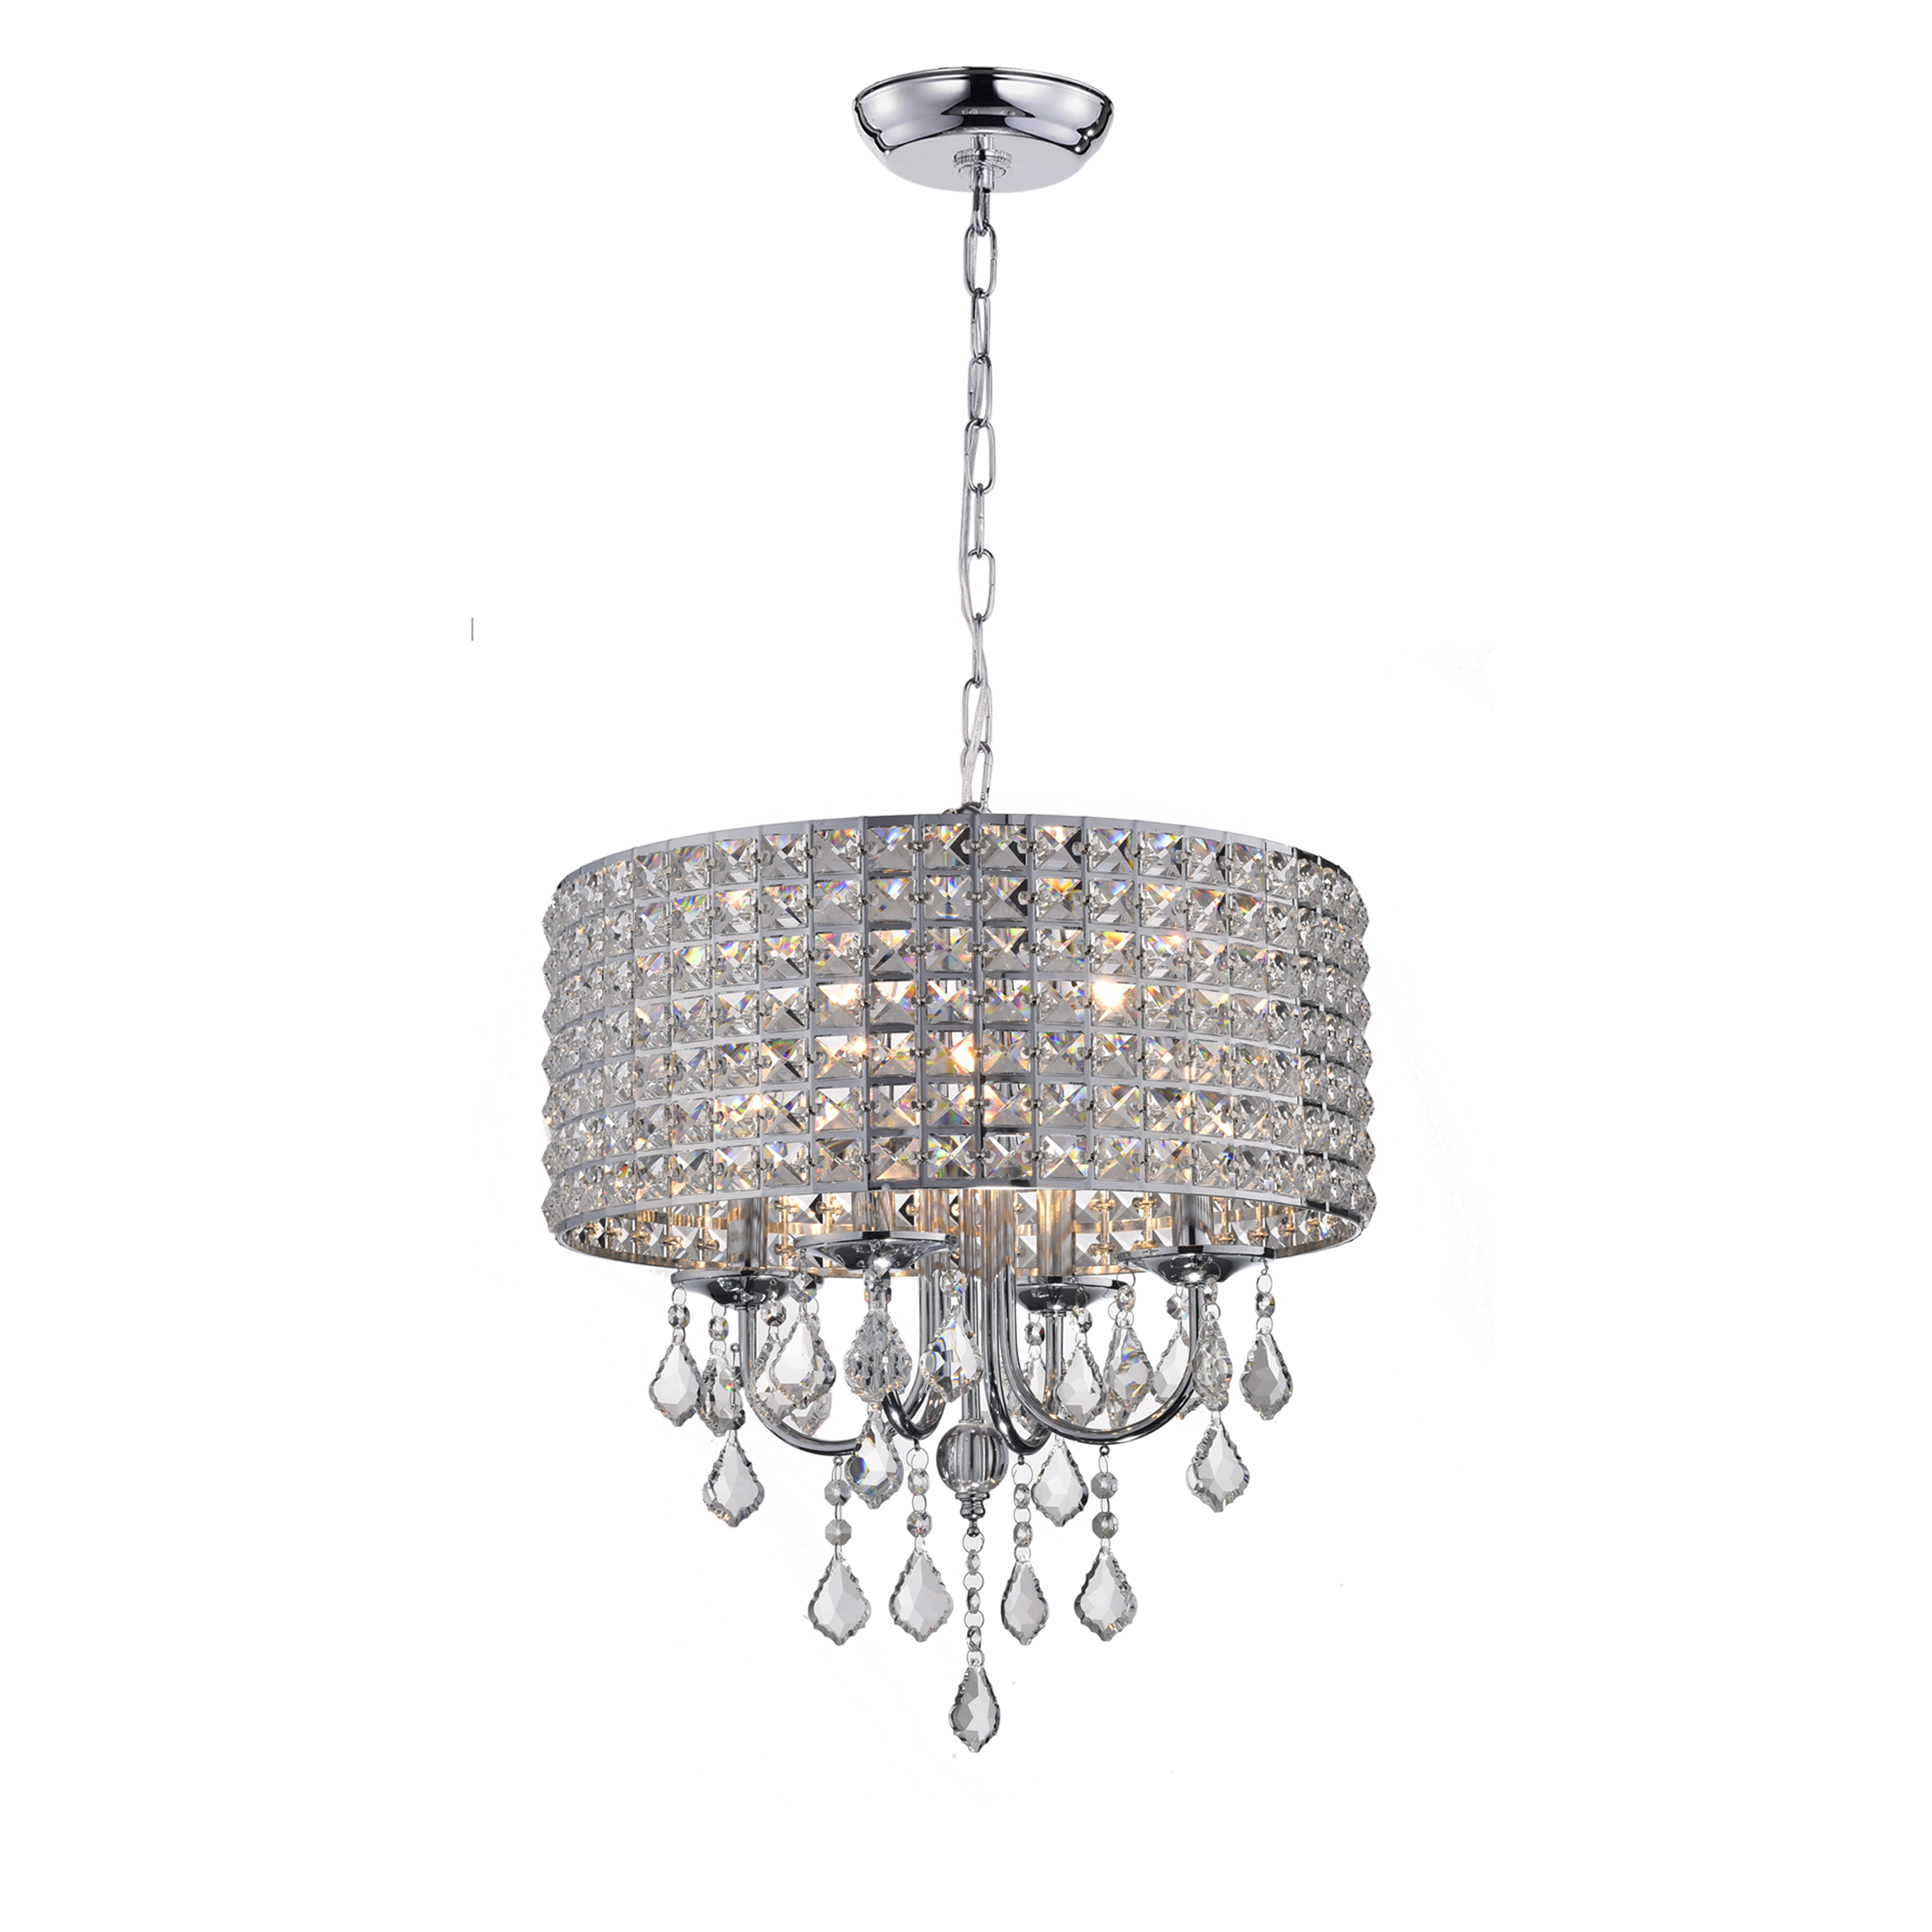 Most Recently Released Albano 4 Light Crystal Chandelier Within Benedetto 5 Light Crystal Chandeliers (View 3 of 25)